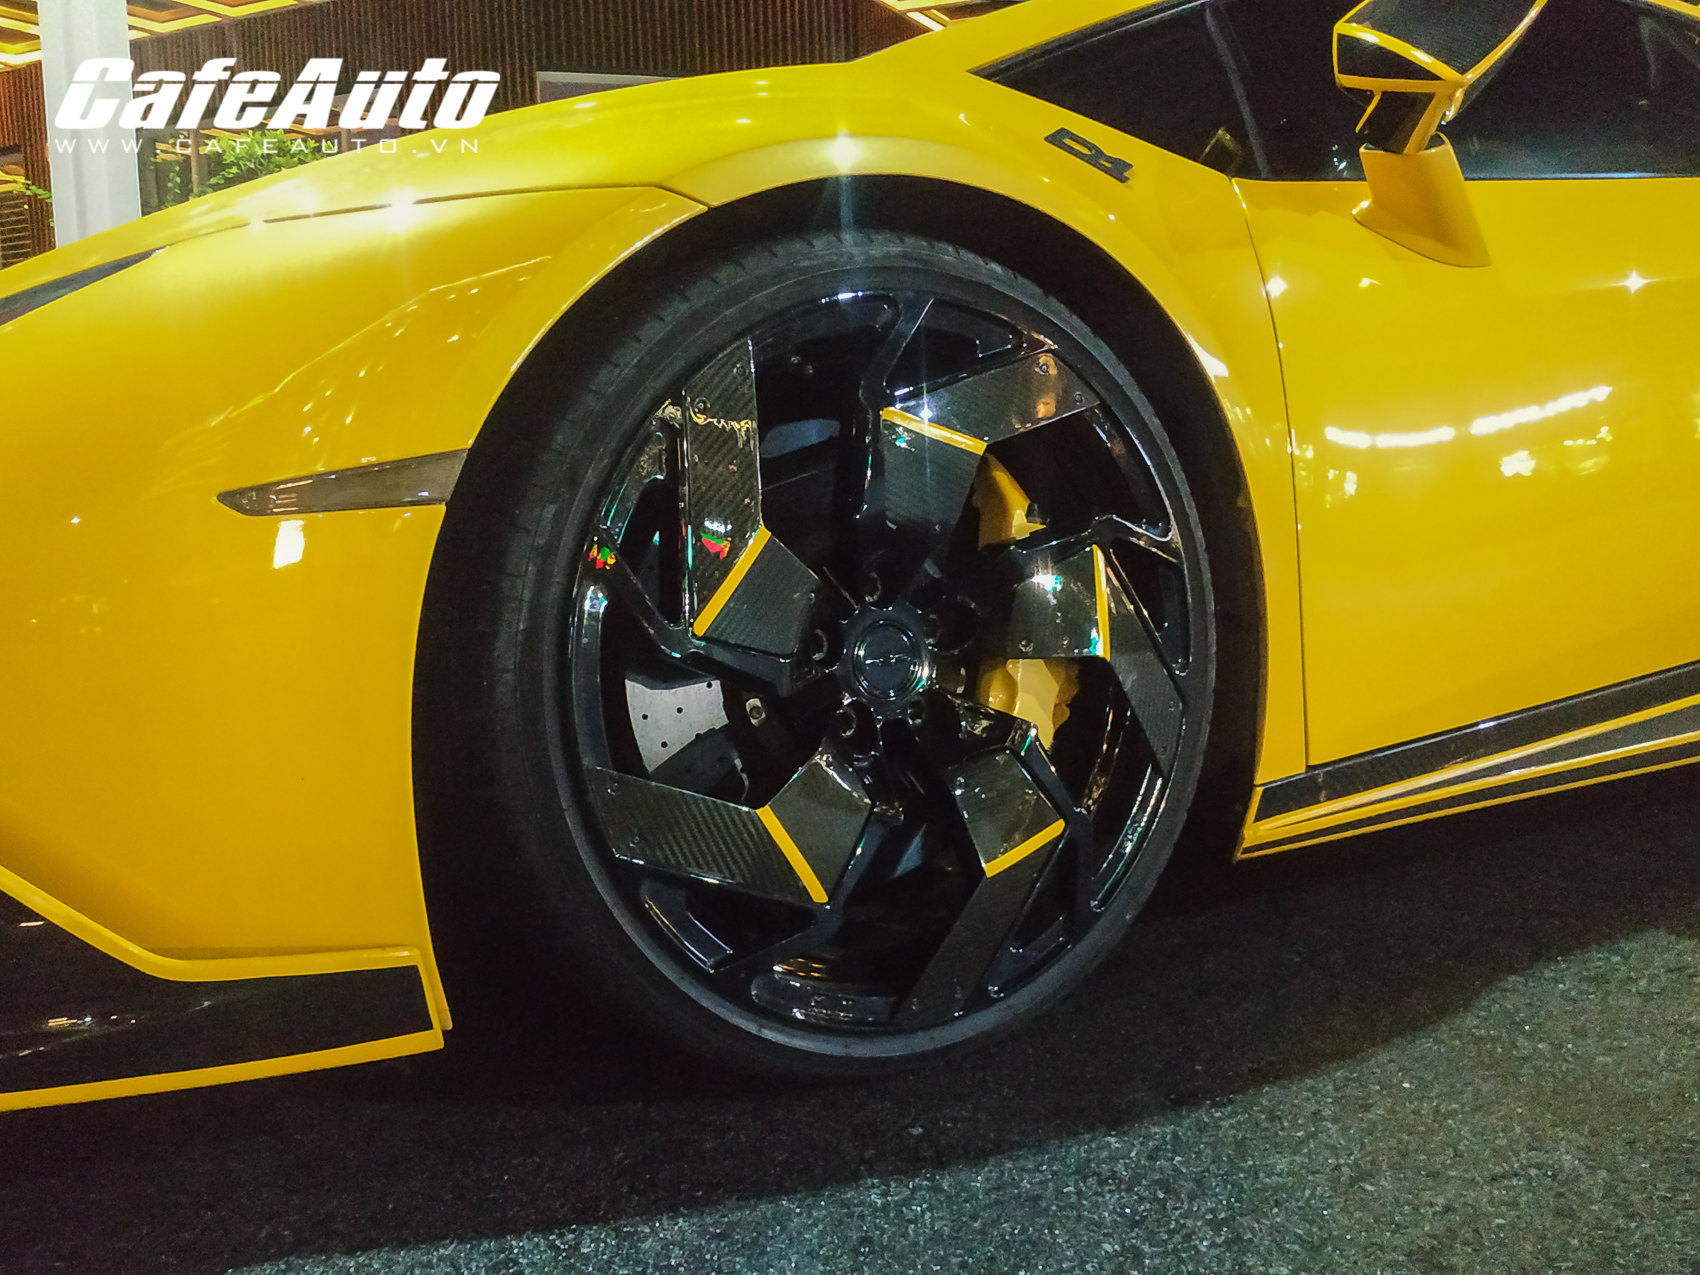 huracanmansory-cafeautovn-11